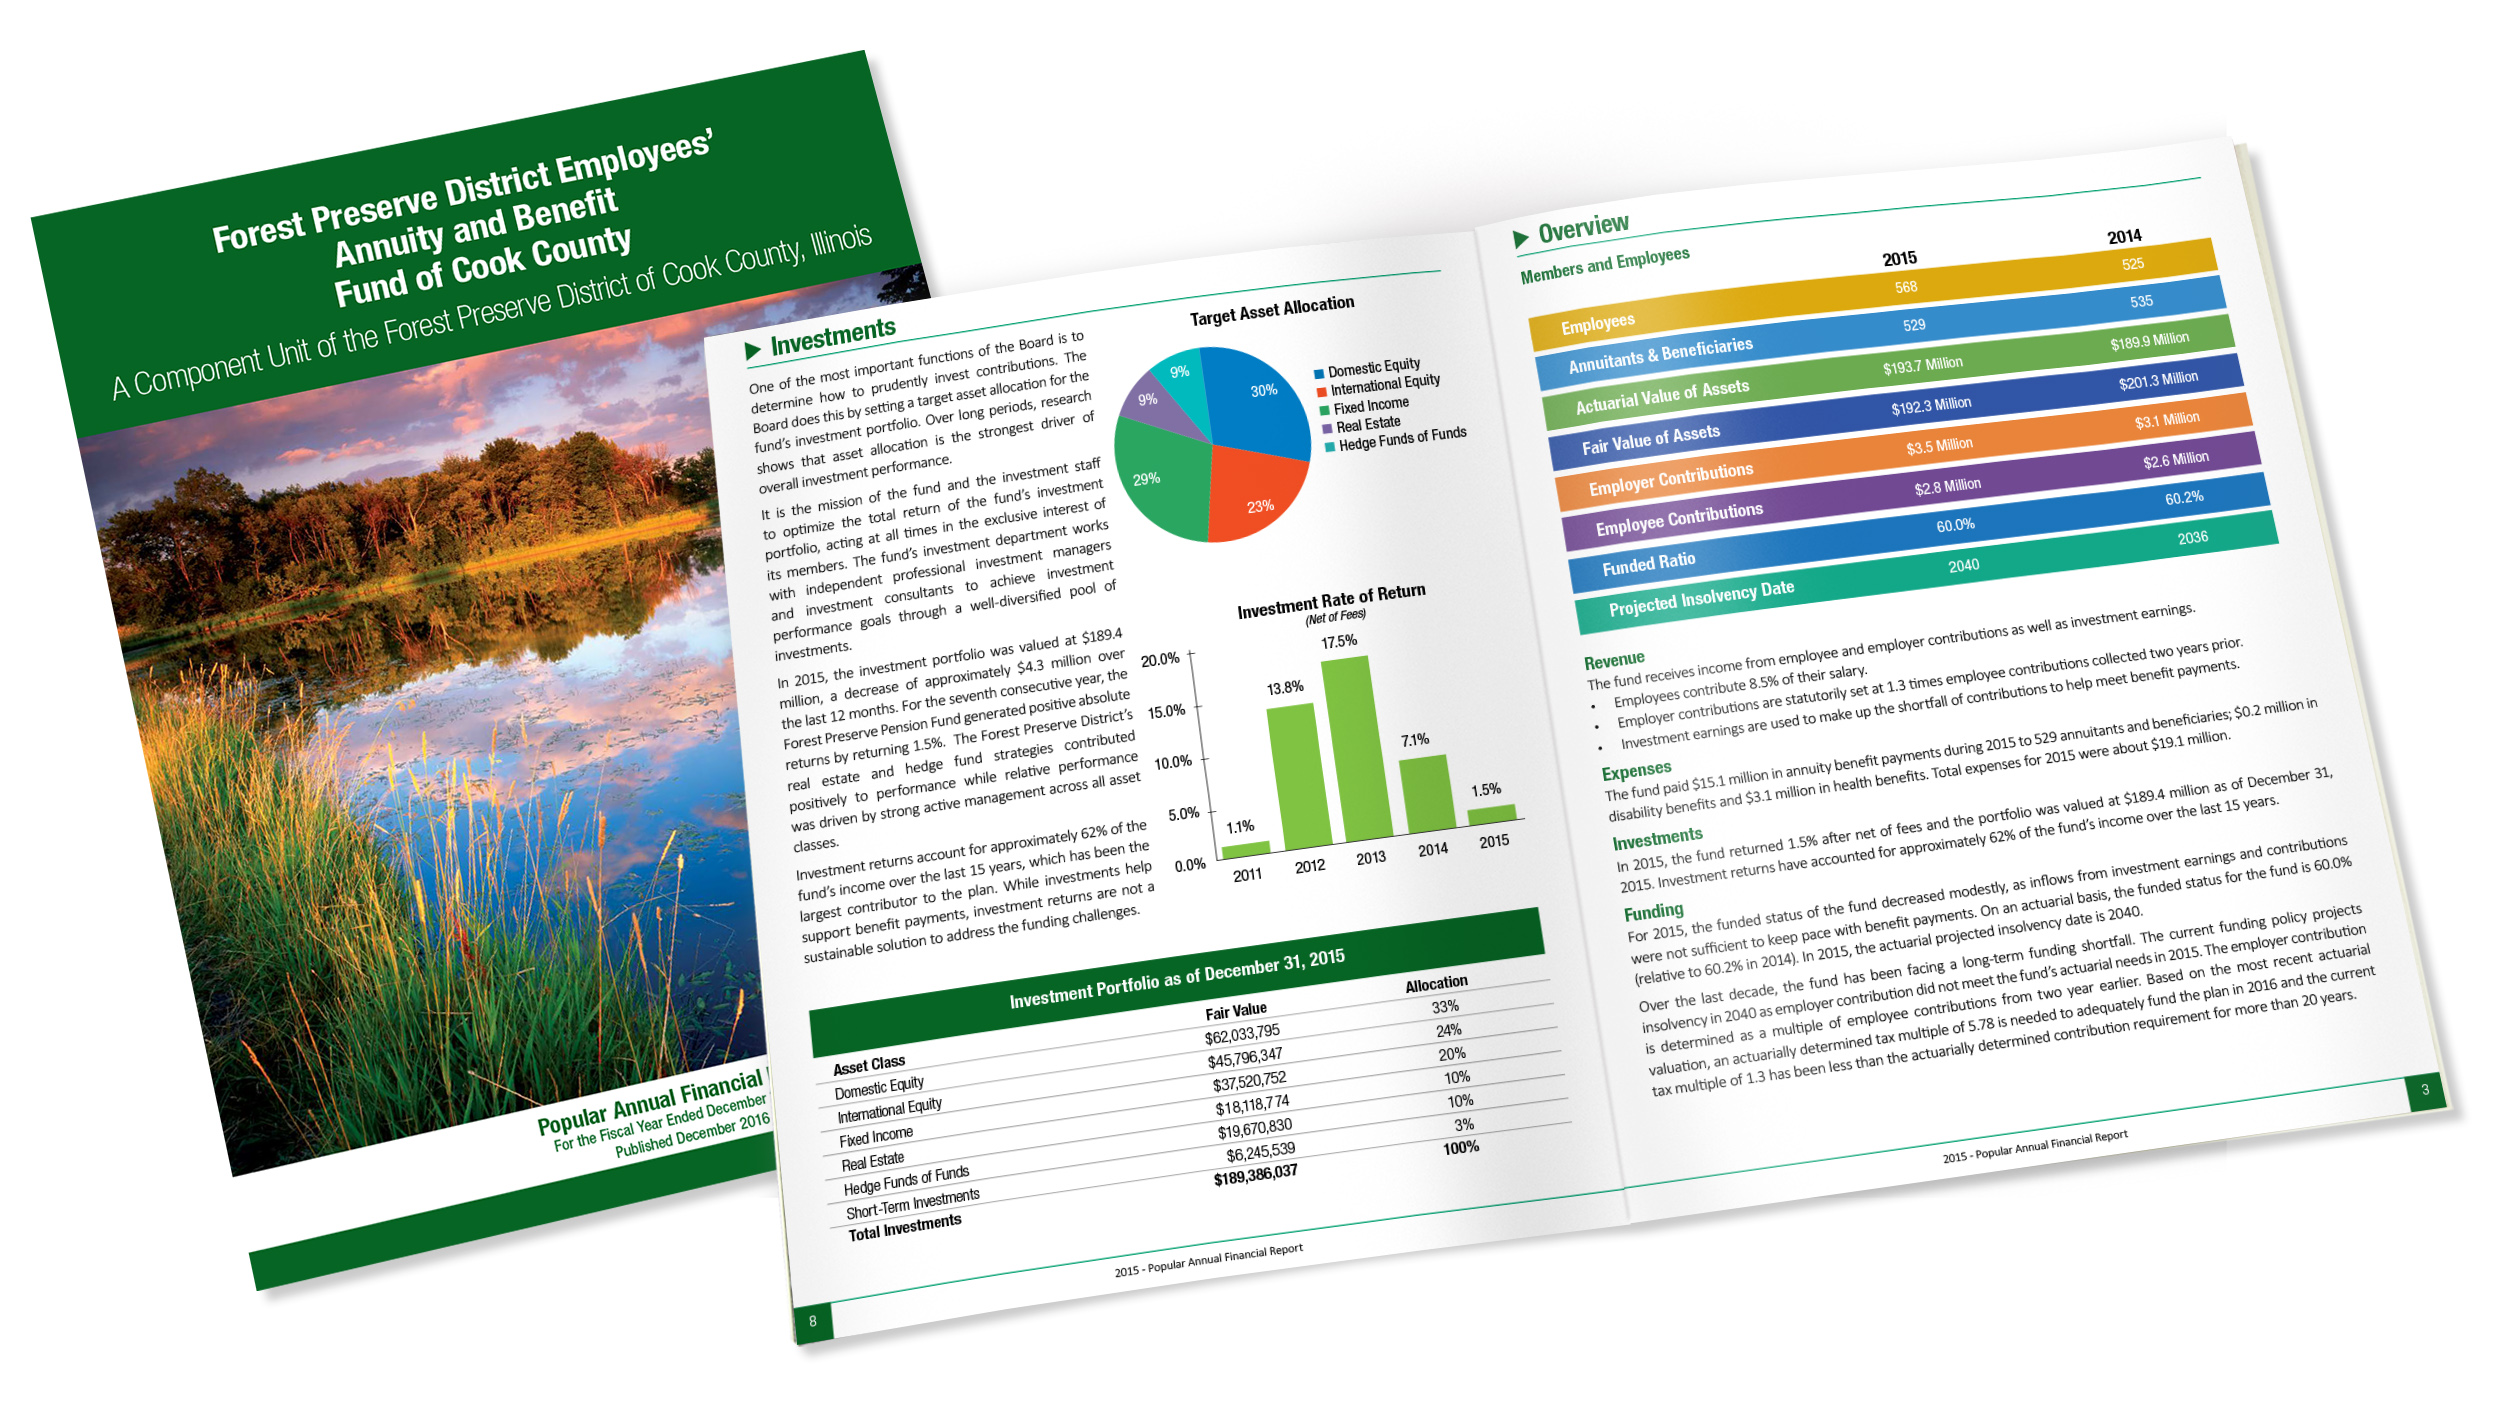 Forest-Preserve-annual-report-Collateral-Material.jpg